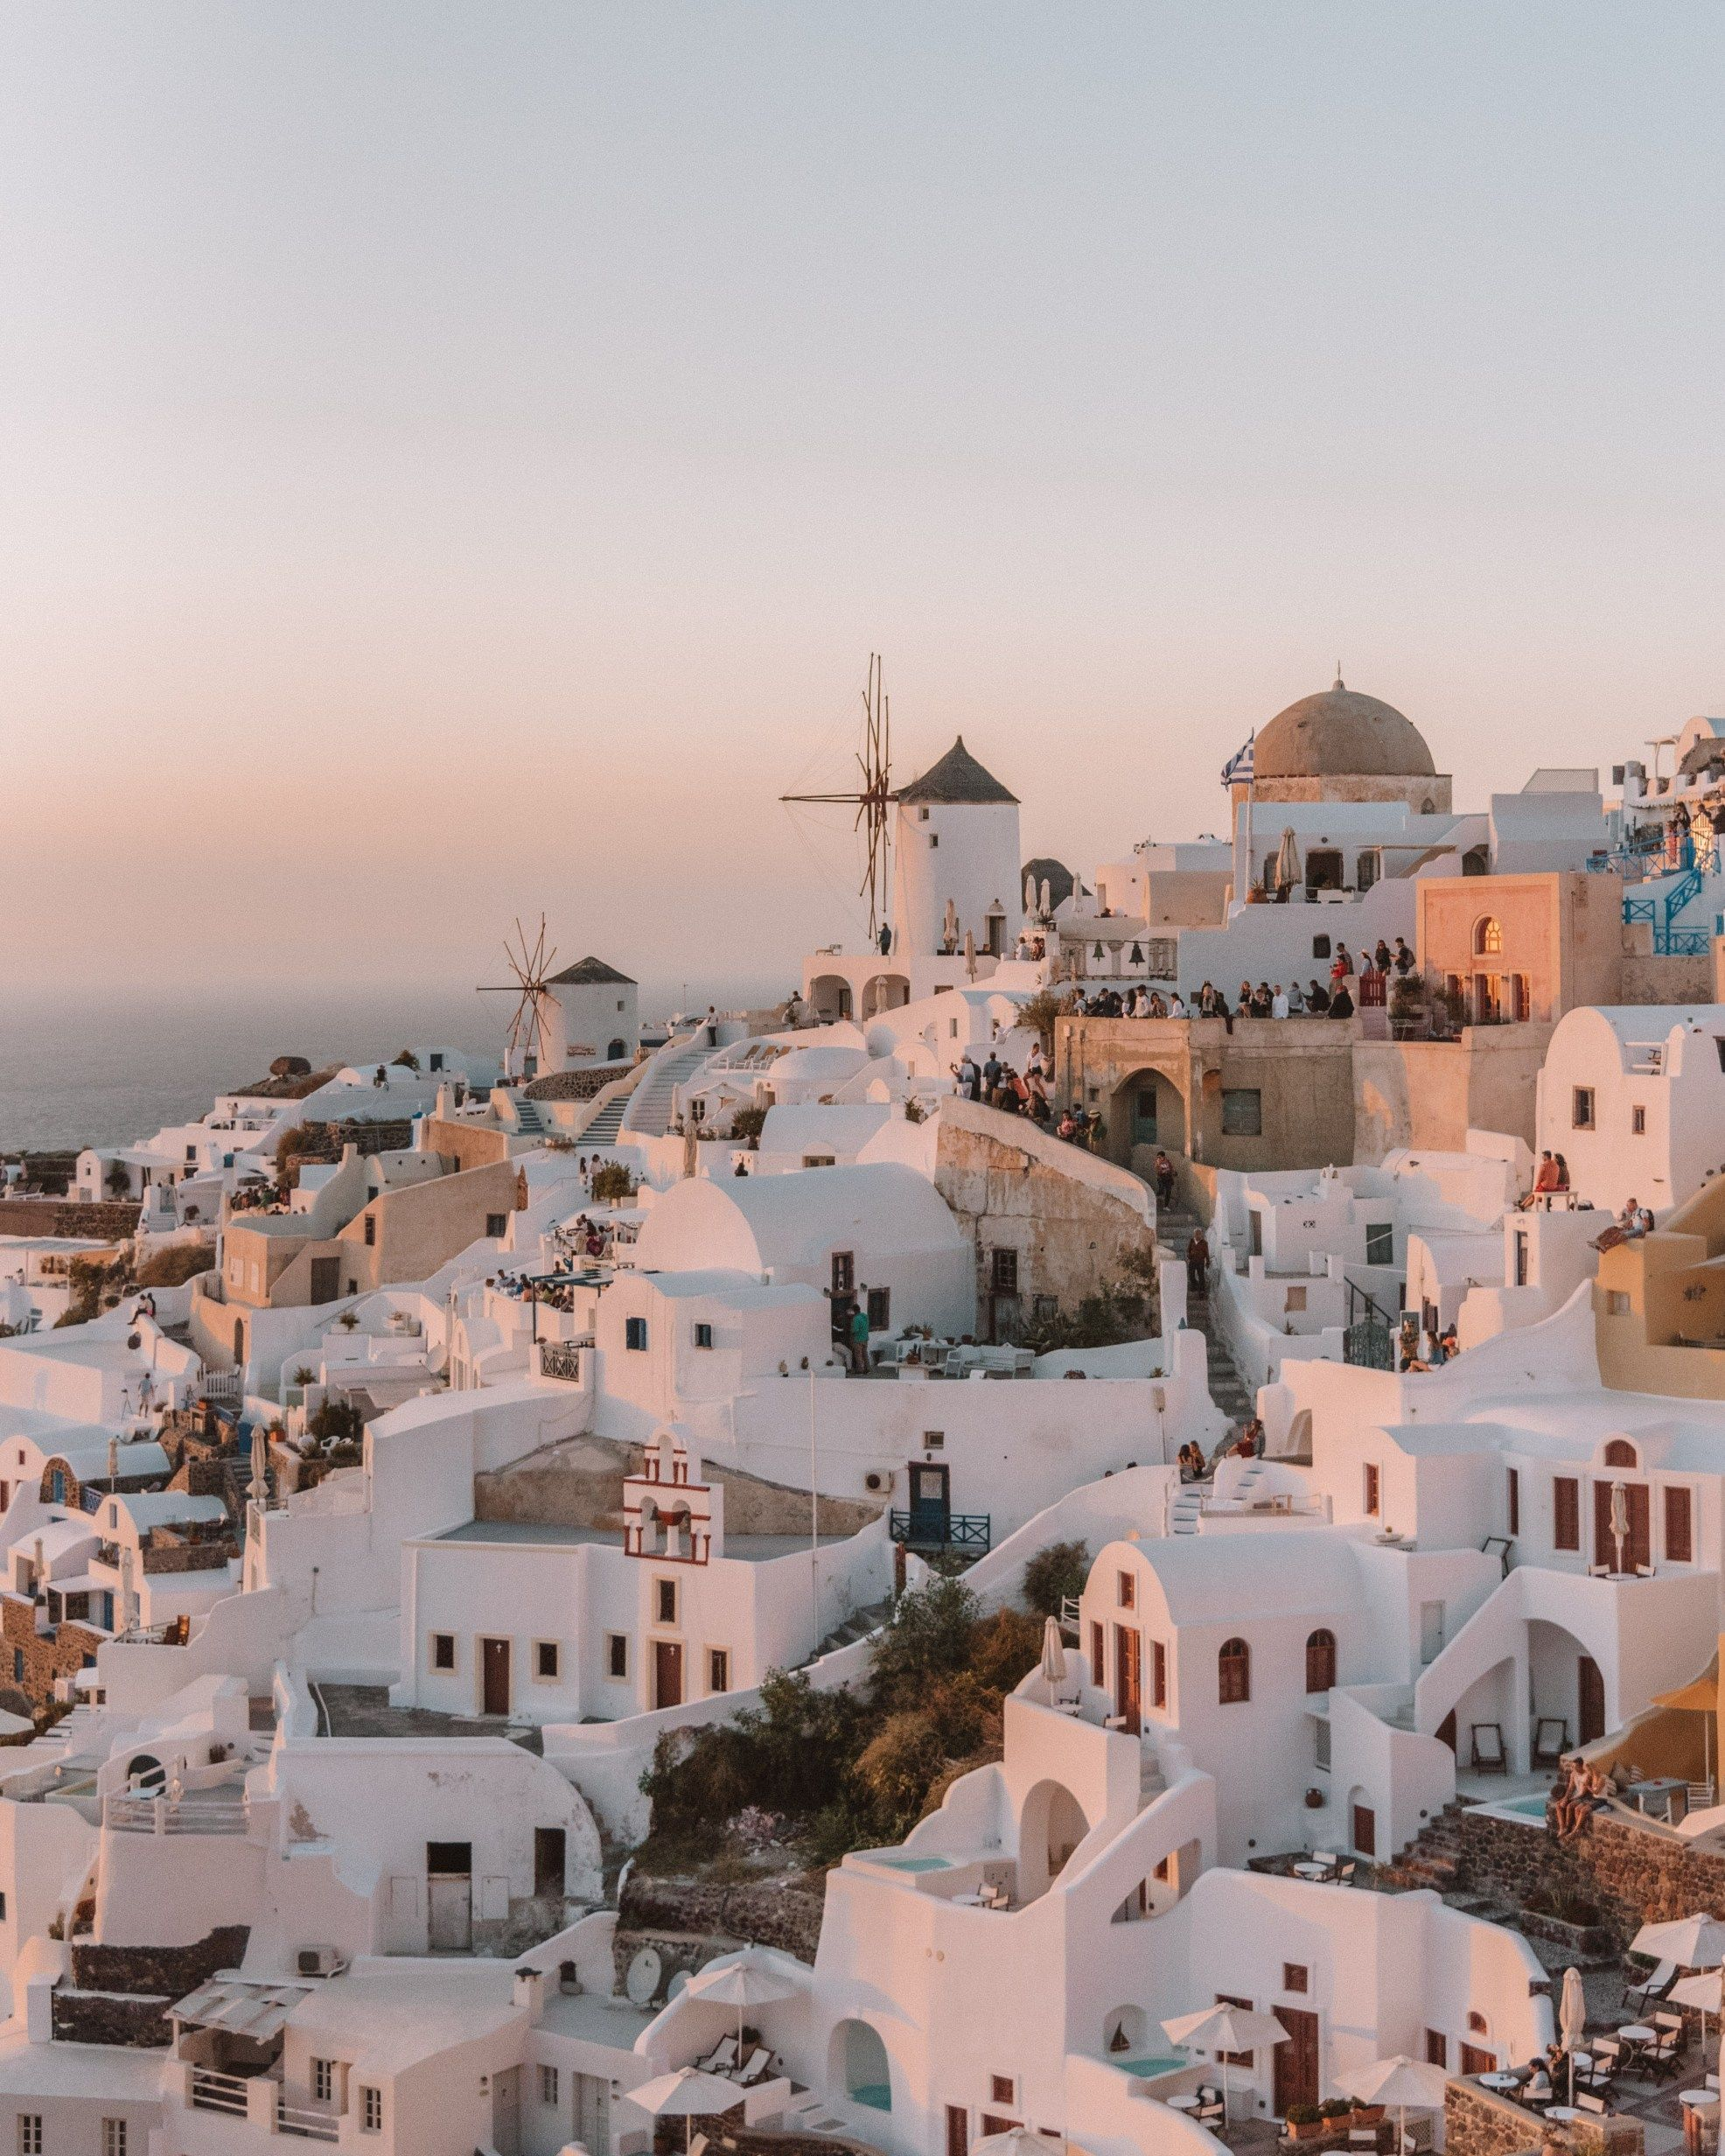 22 Things to know before visiting Greece #visitgreece 22 Things to know before visiting Greece - Gamintraveler #visitgreece